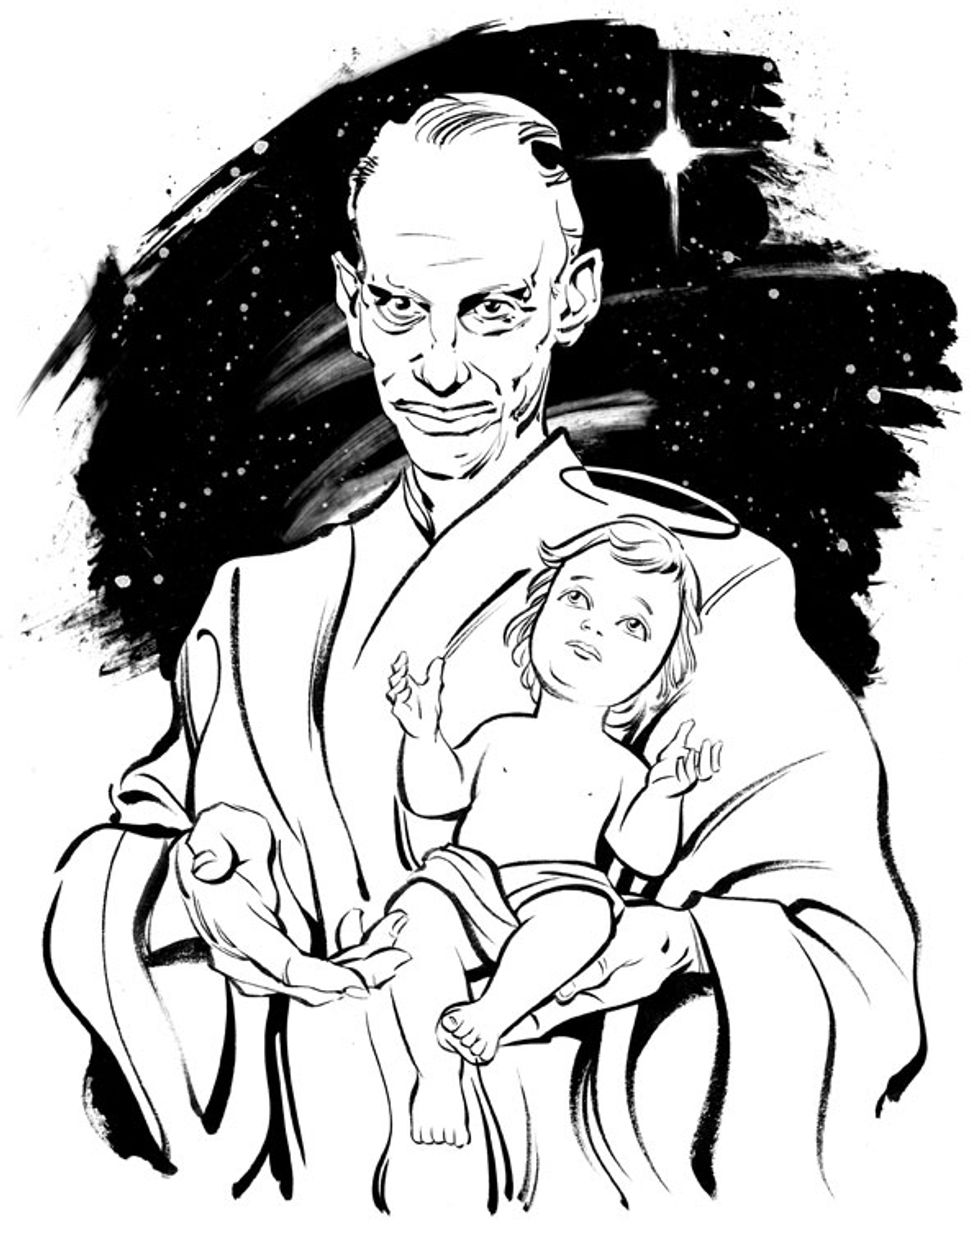 John Waters On His One-Man Christmas Show and The Horrors of Living Nativity Scenes